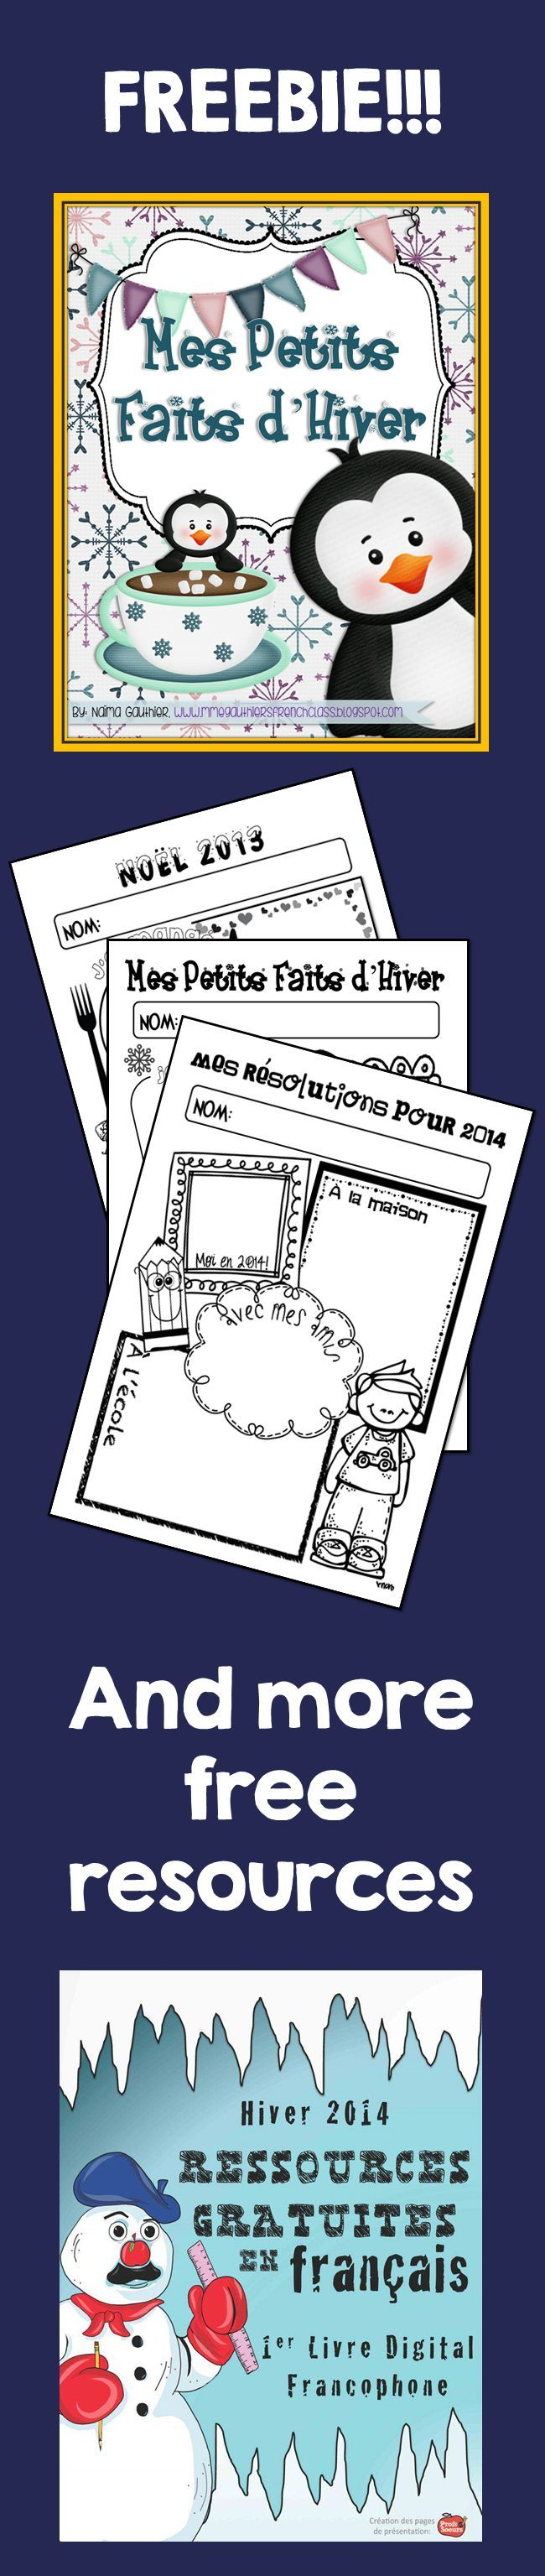 FRENCH TIPS & FREEBIES eBOOK - 21 teachers have worked hard to put together the 1st ever French eBook on TpT. Download my contribution and many more by following this link!